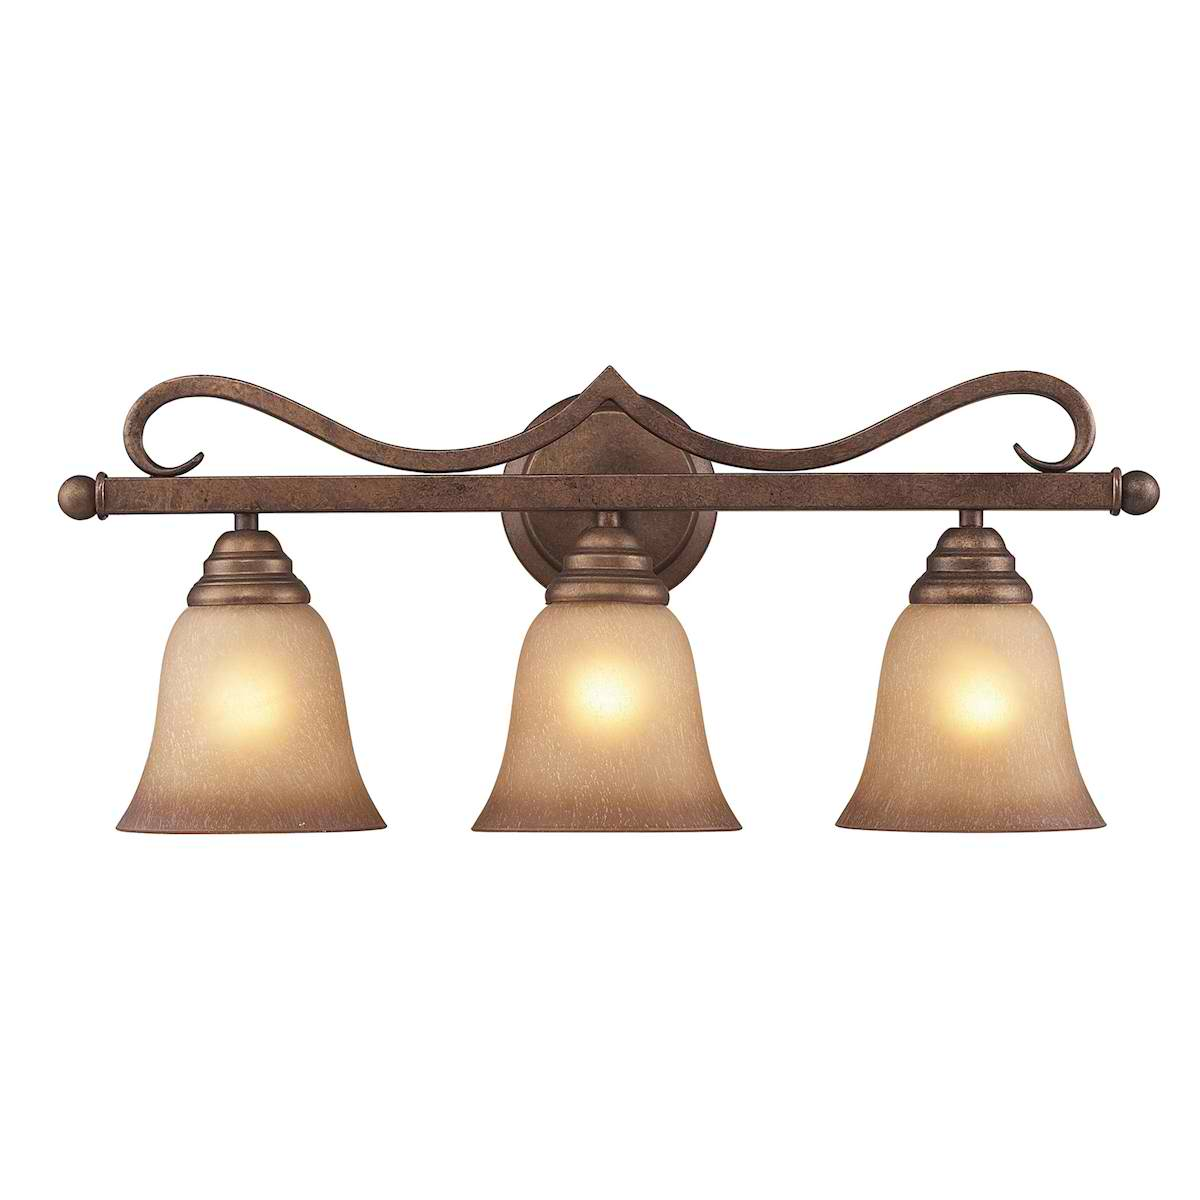 Lawrenceville Collection 3 Light Wall Sconce